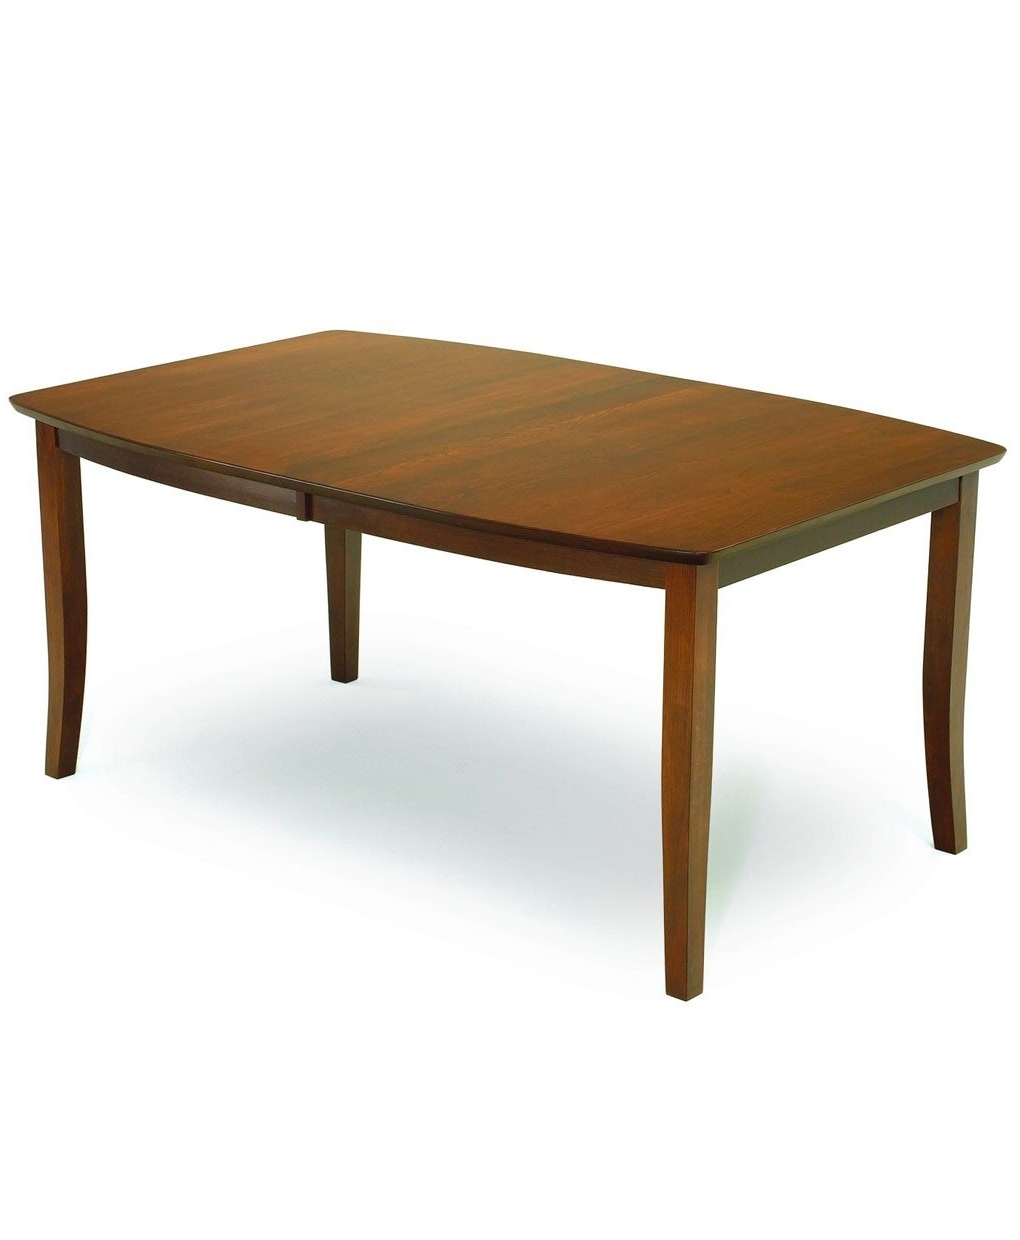 Imperial Dining Tables throughout Trendy Imperial Dining Table - Amish Direct Furniture